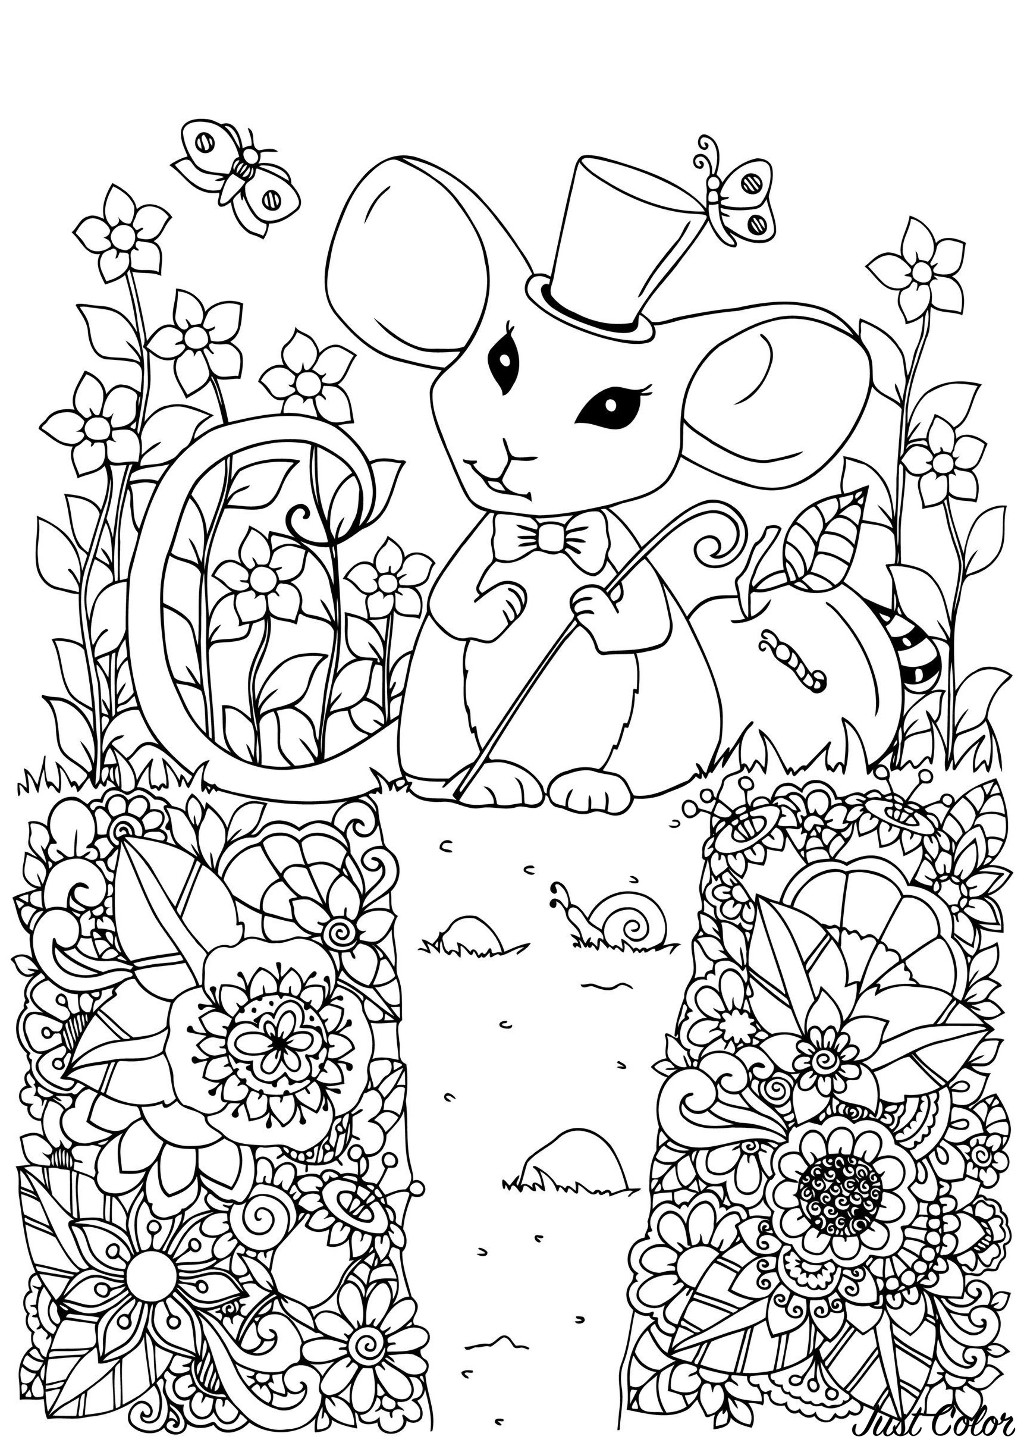 Cute free Mouse coloring page to download